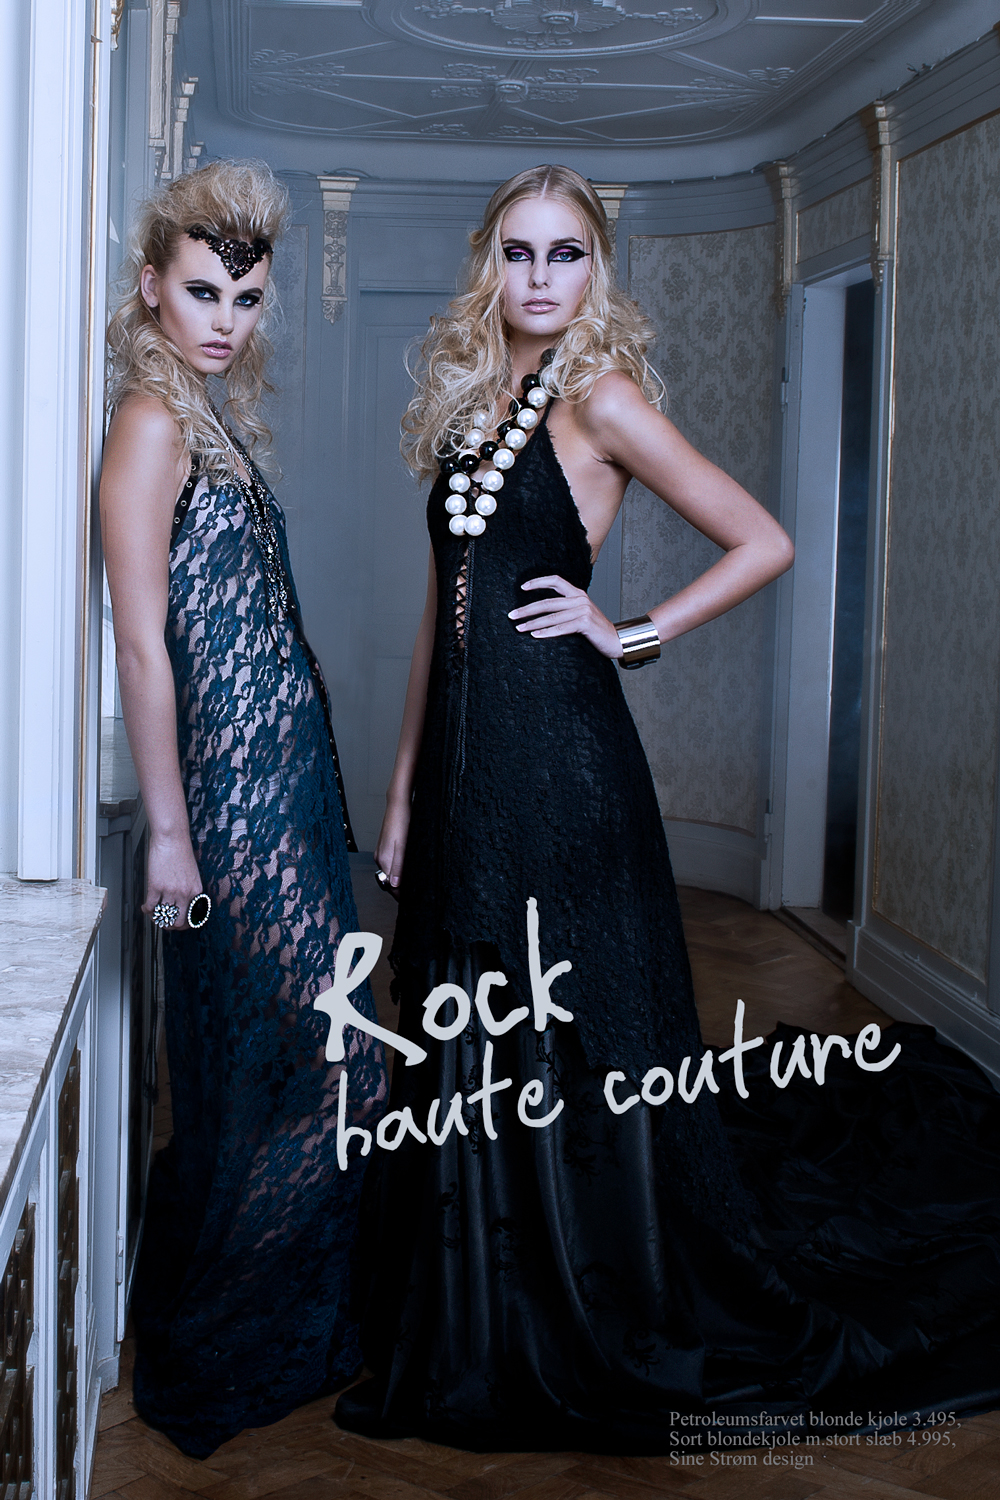 Rock haute cuture shoot!